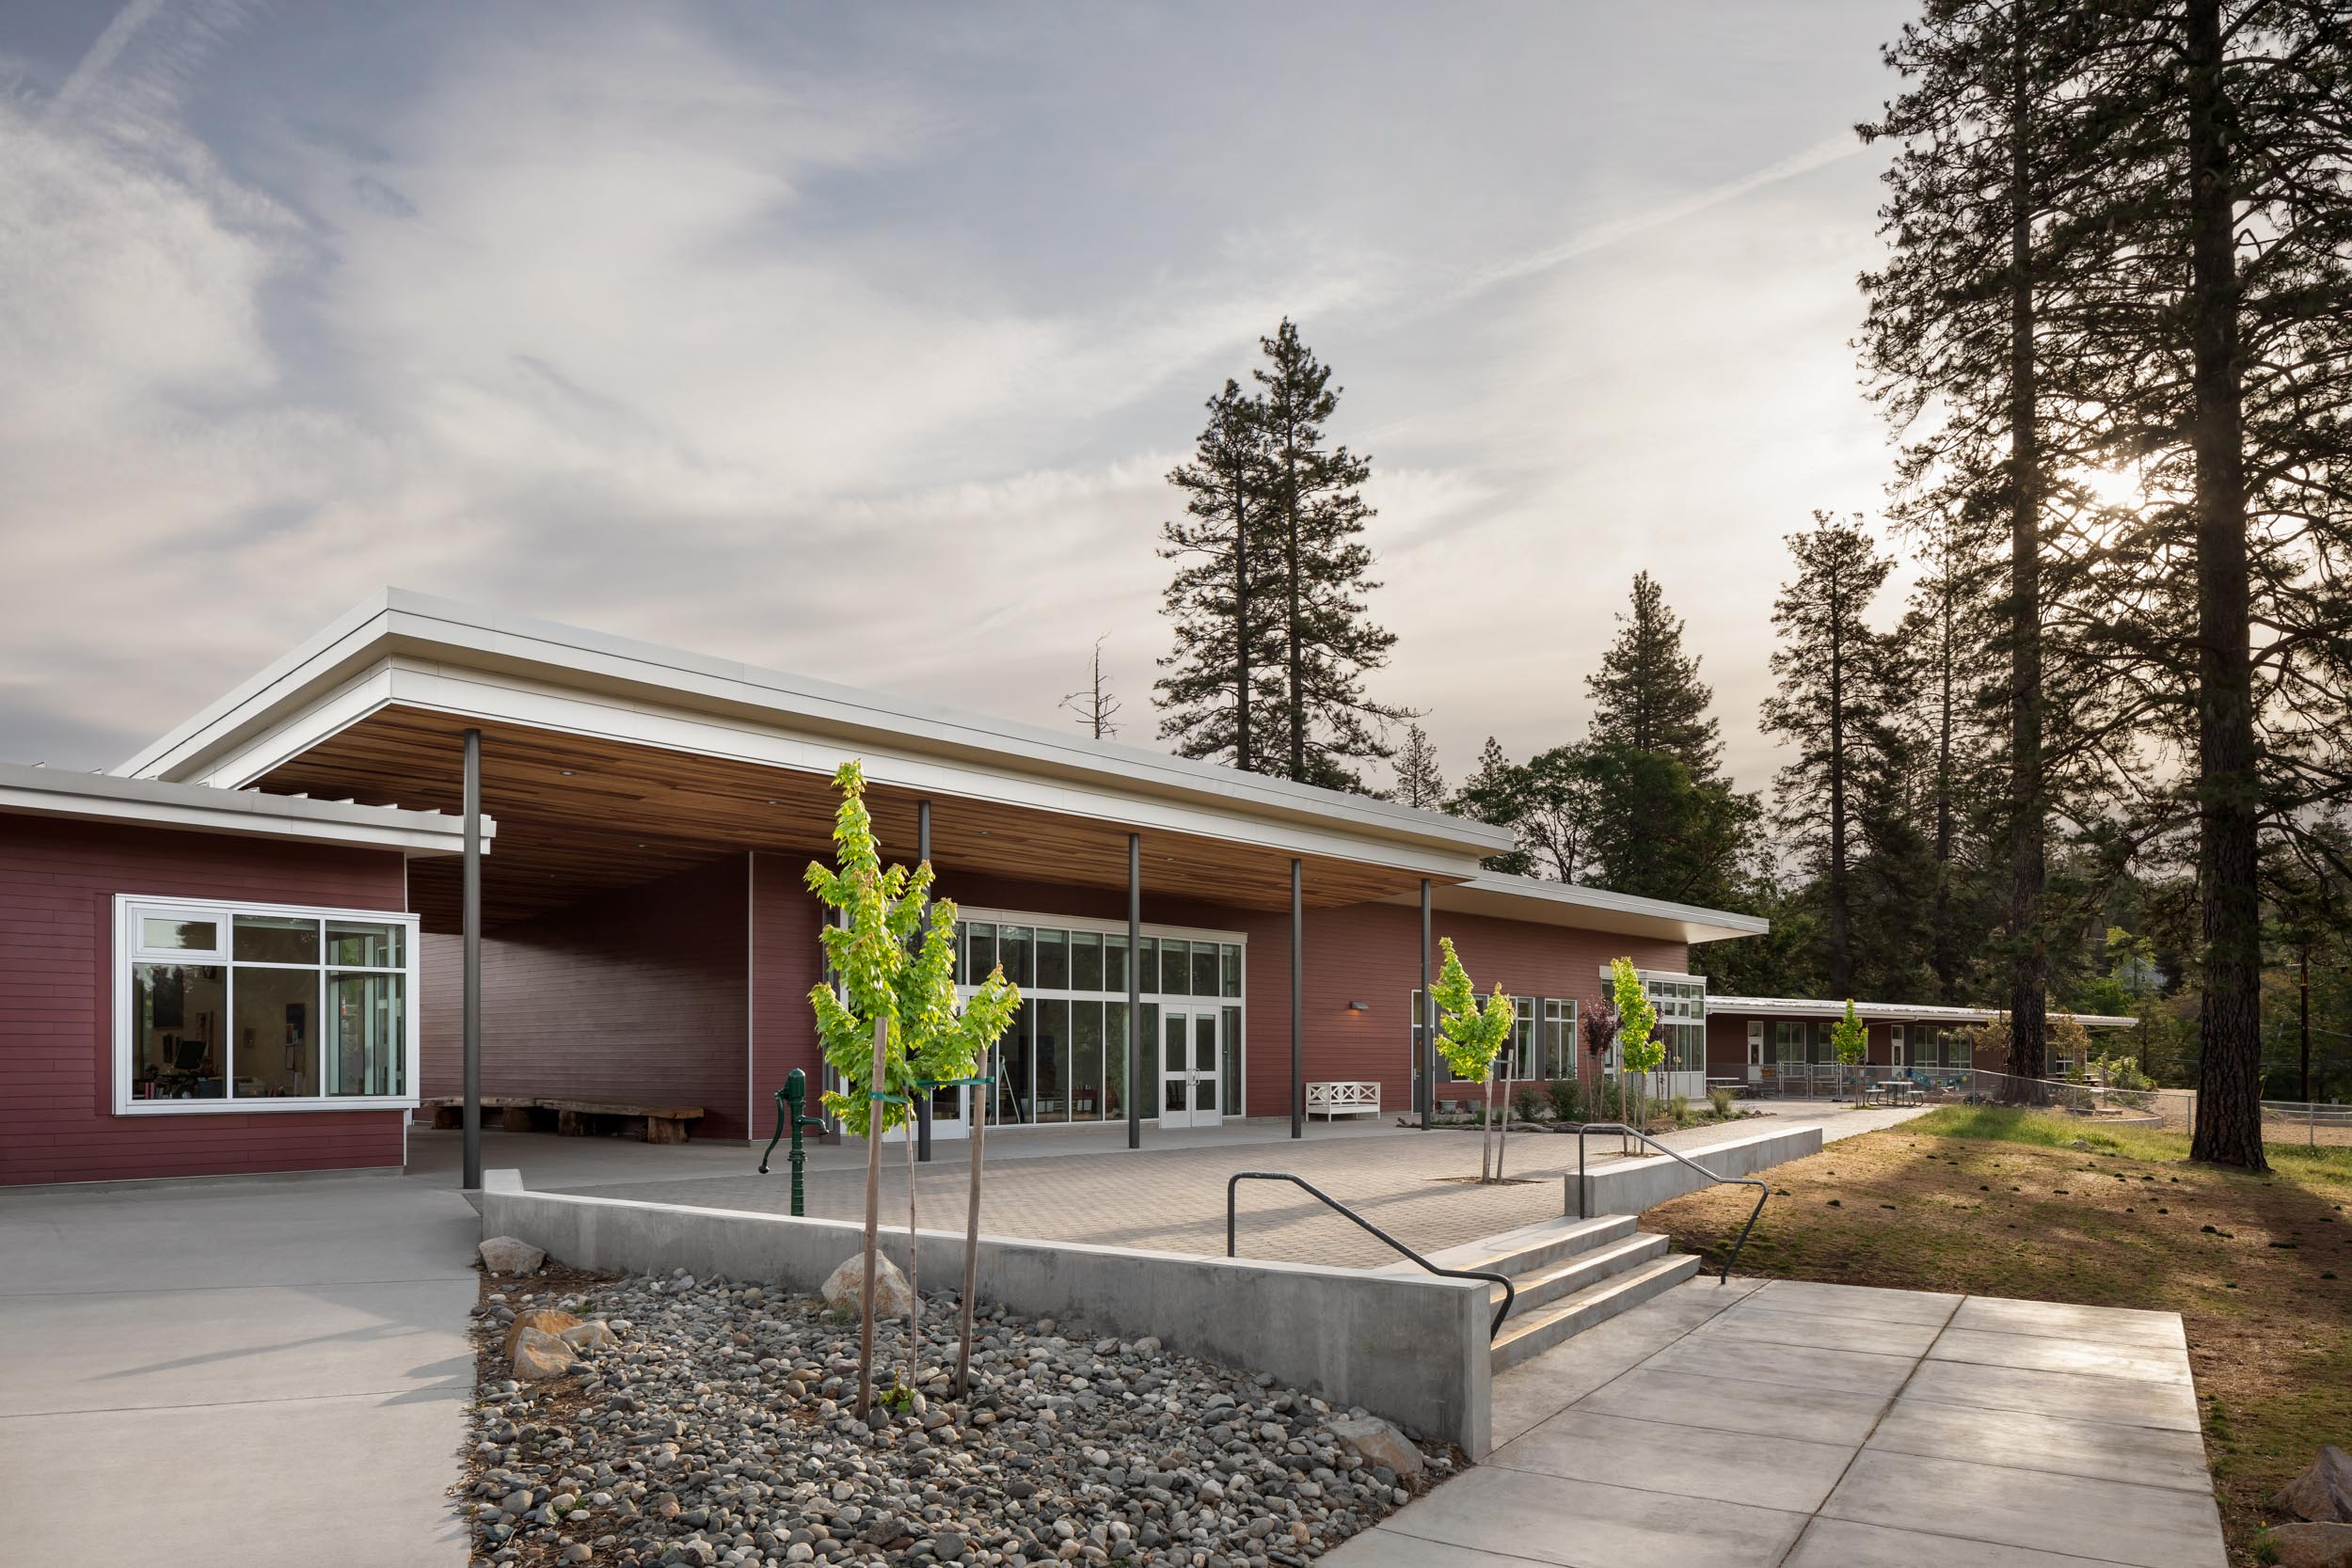 Yuba River Charter School,  Grass Valley, CA